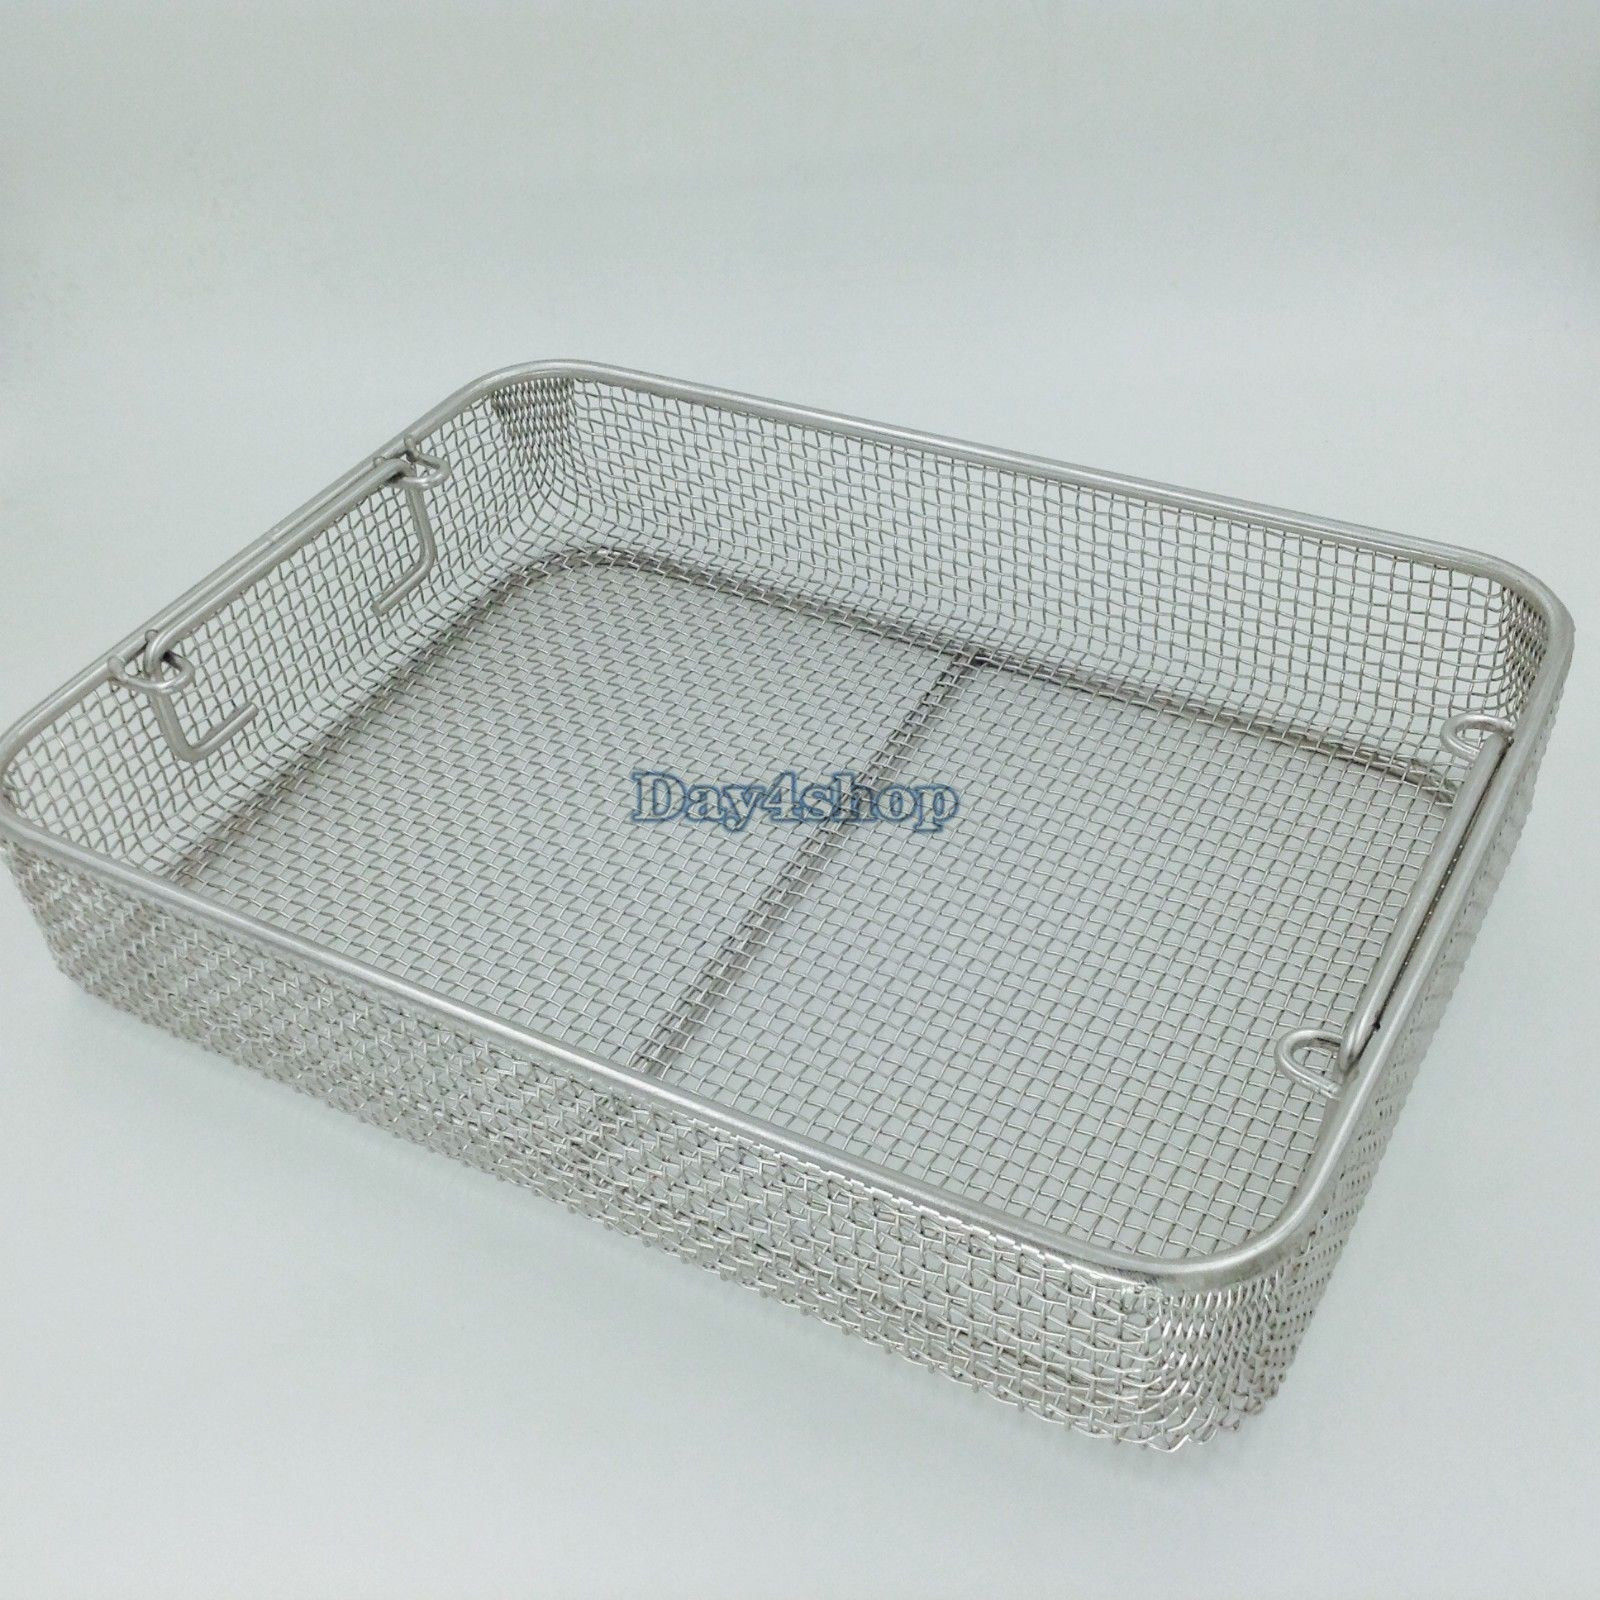 Surgical ophthalmic instruments Stainless steel sterilization tray case box surgical instrument эспандер грудной housefit dd 6304